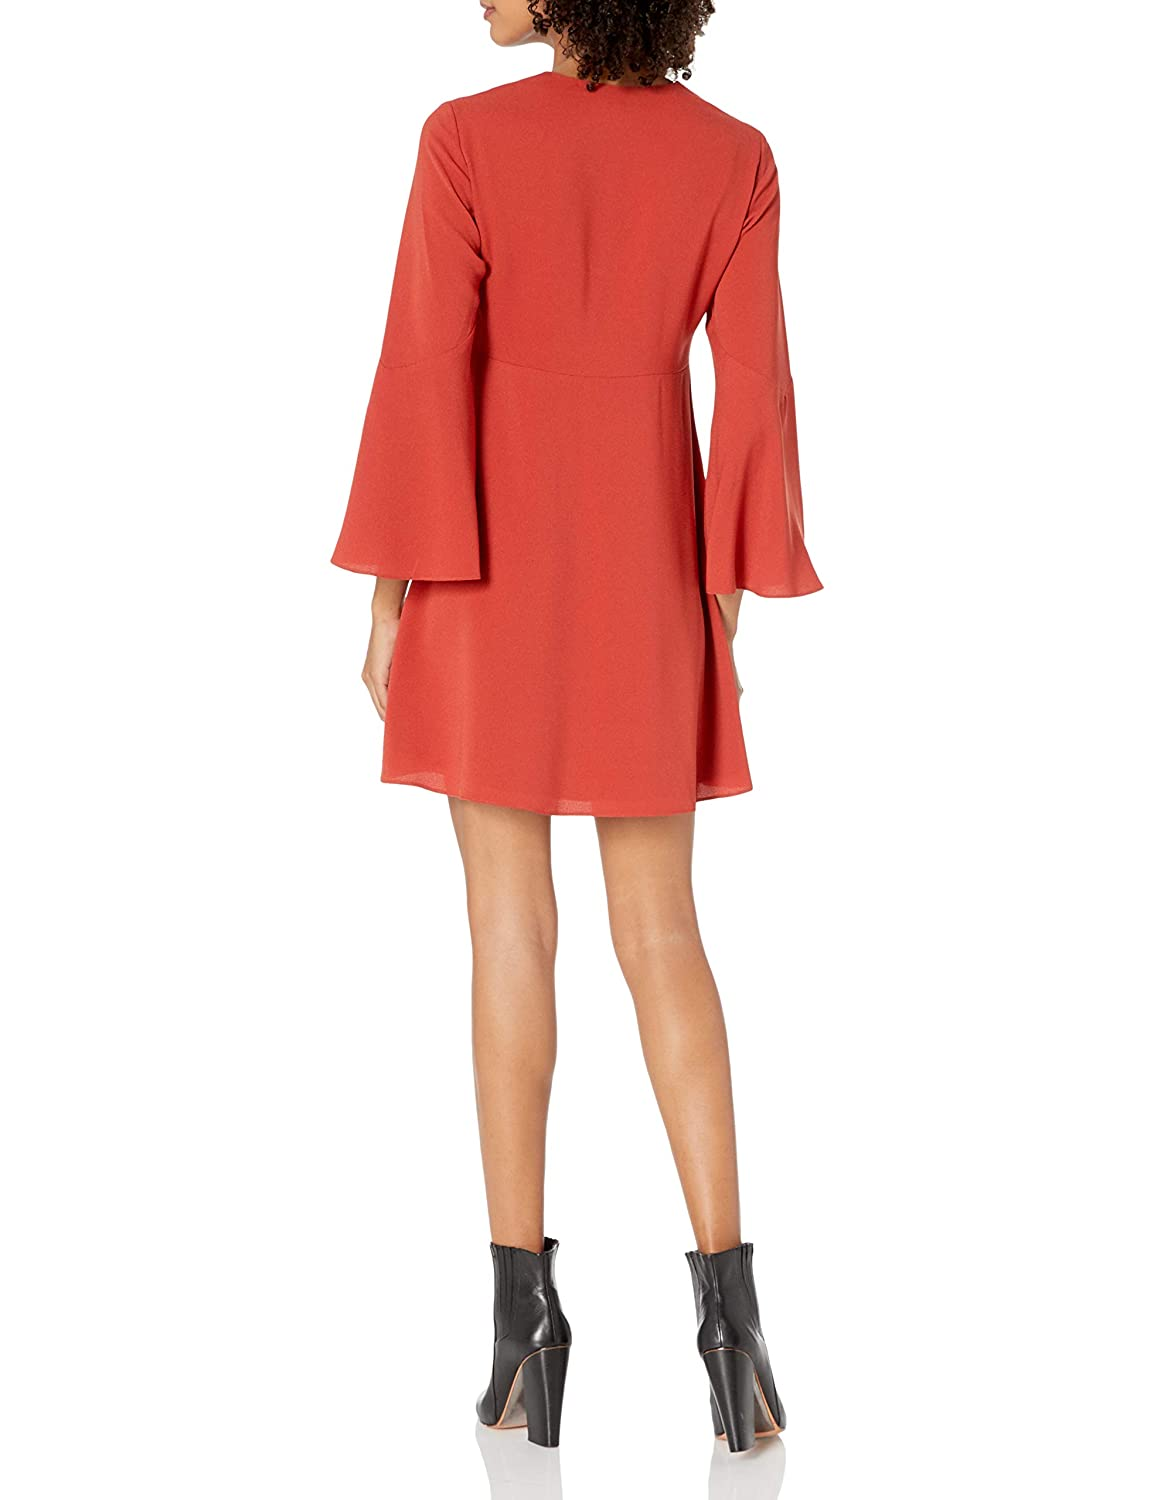 Halston Heritage Womens Long Bell Sleeve Deep V Neck Dress with Shirring and Beads